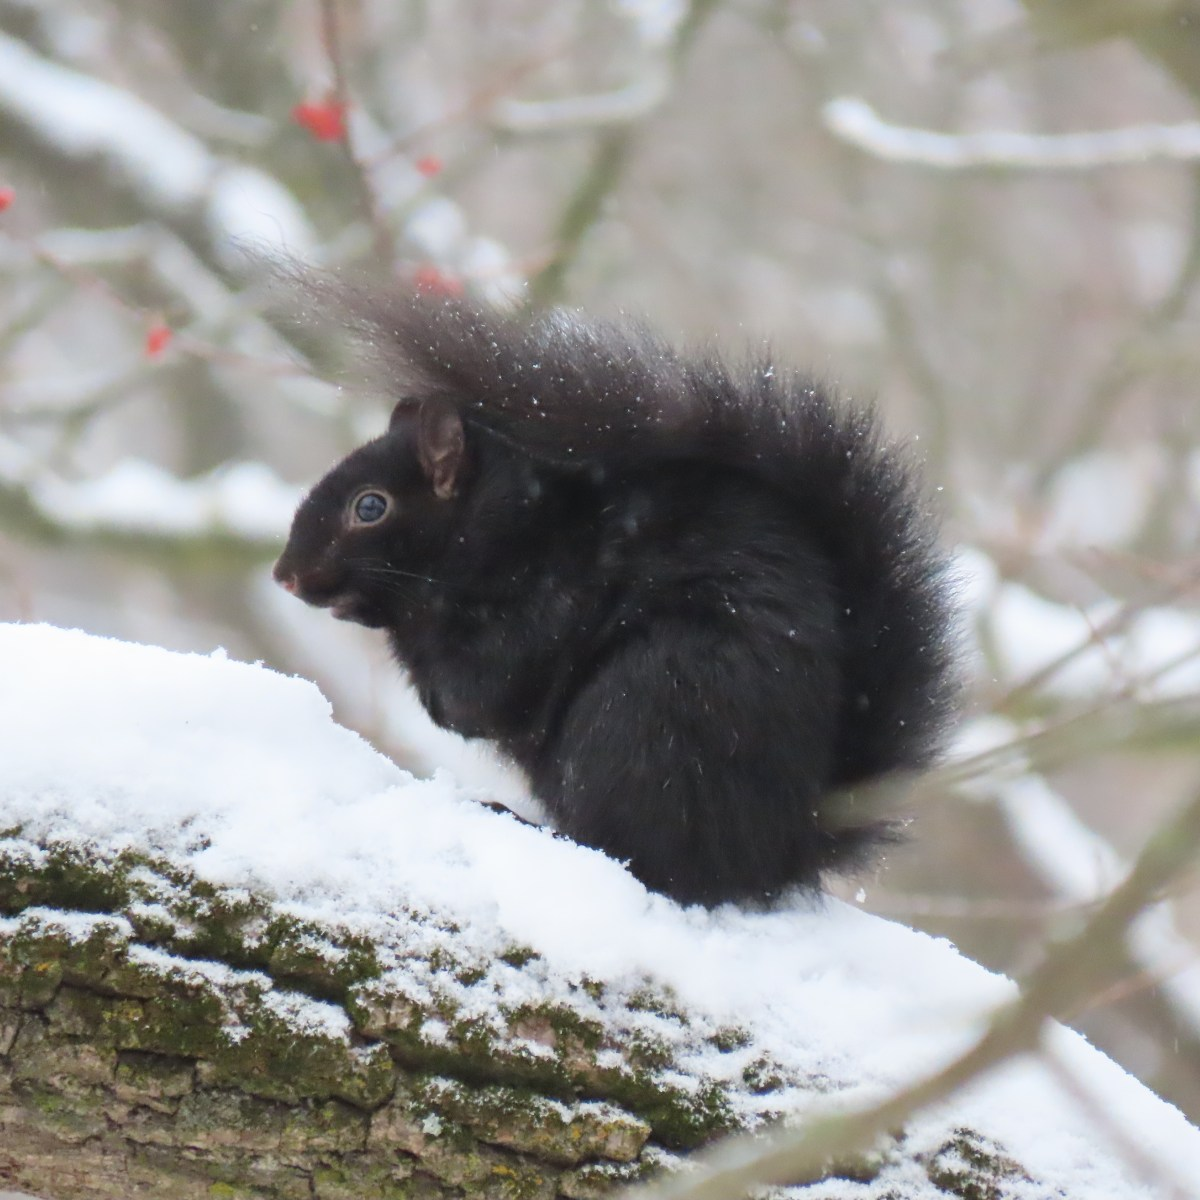 A black-colored gray squirrel sits on a snow-covered branch